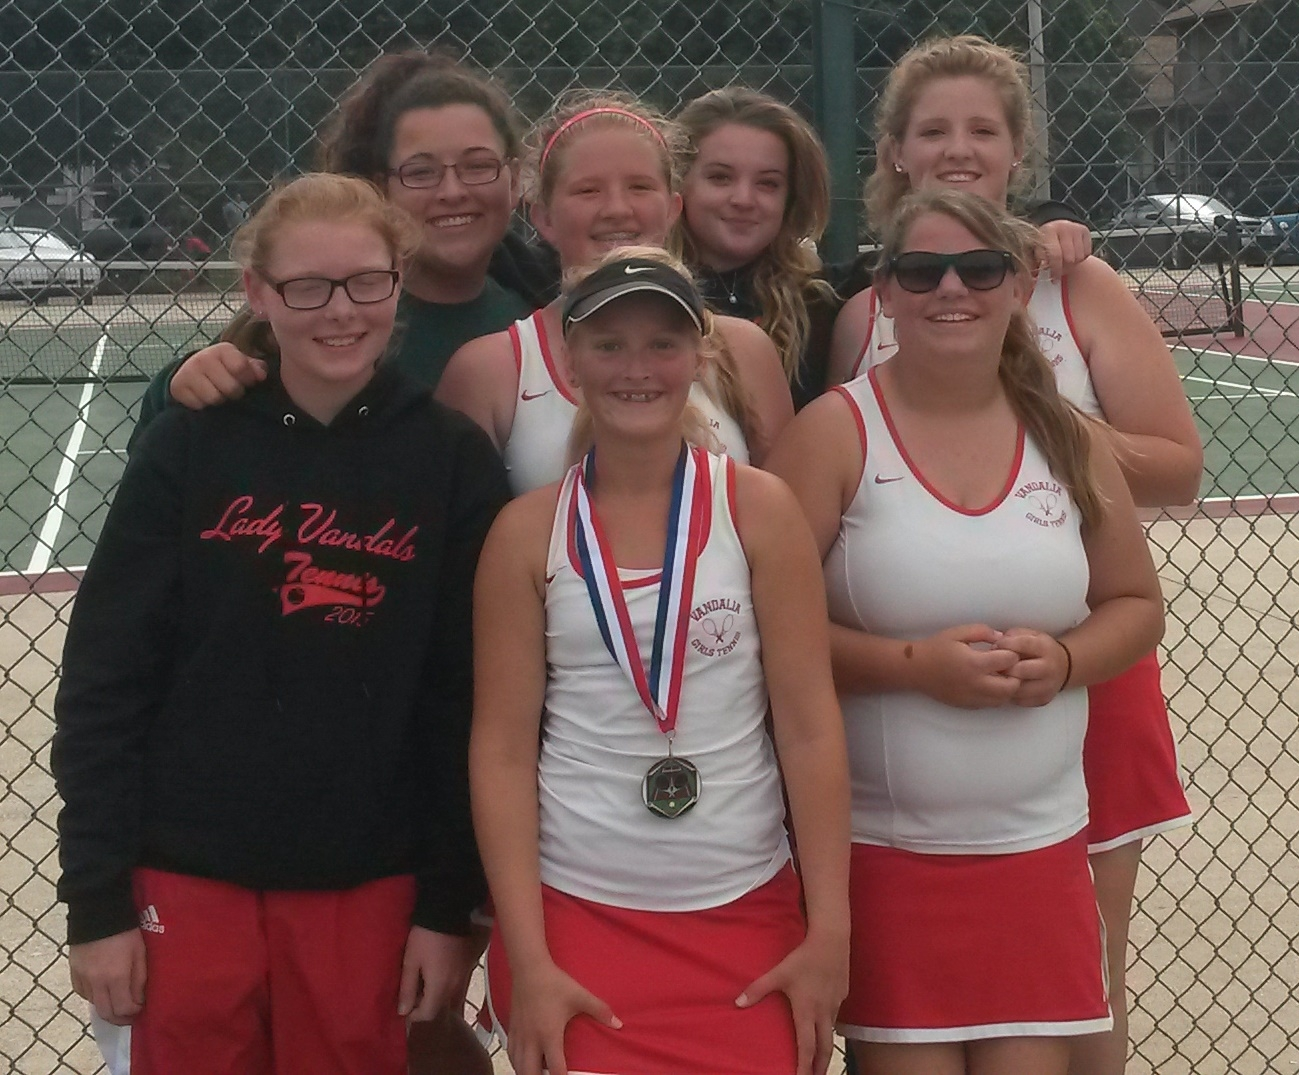 Hannah Blythe wins singles competition at Centralia Tournament